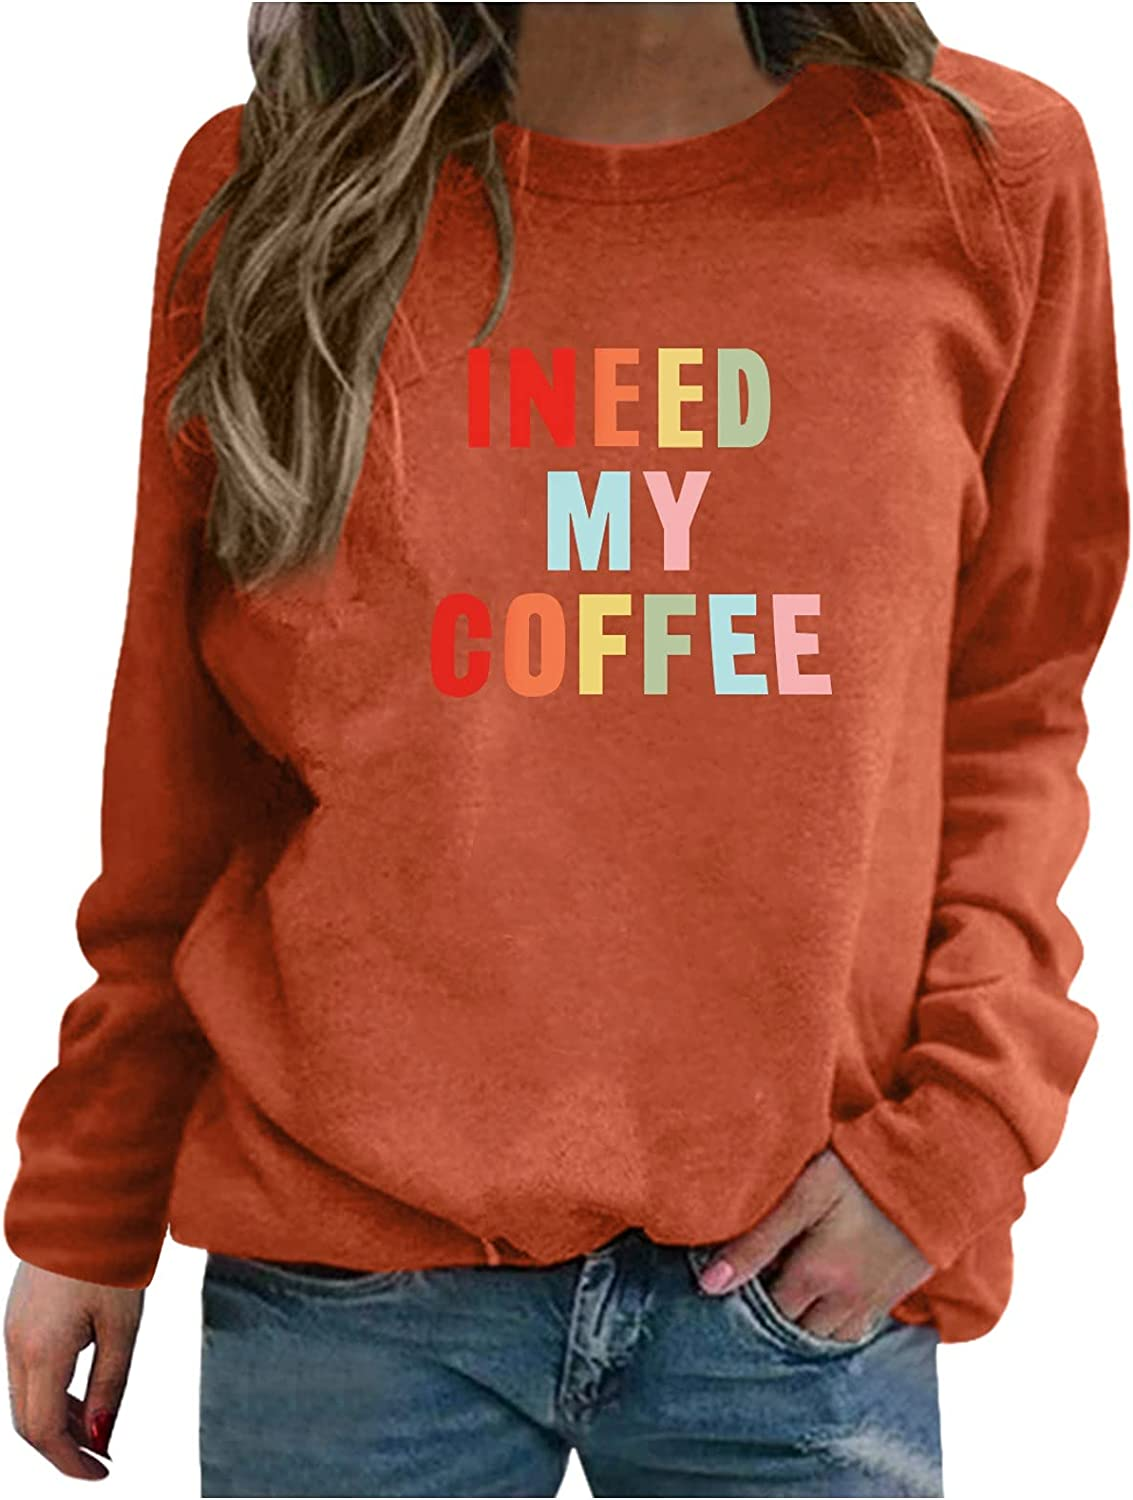 NHGJ Women's Casual Crewneck Sweatshirt with Sayings Funny Graphic Long Sleeve Shirt Tunics Tops Loose Pullovers Blouse